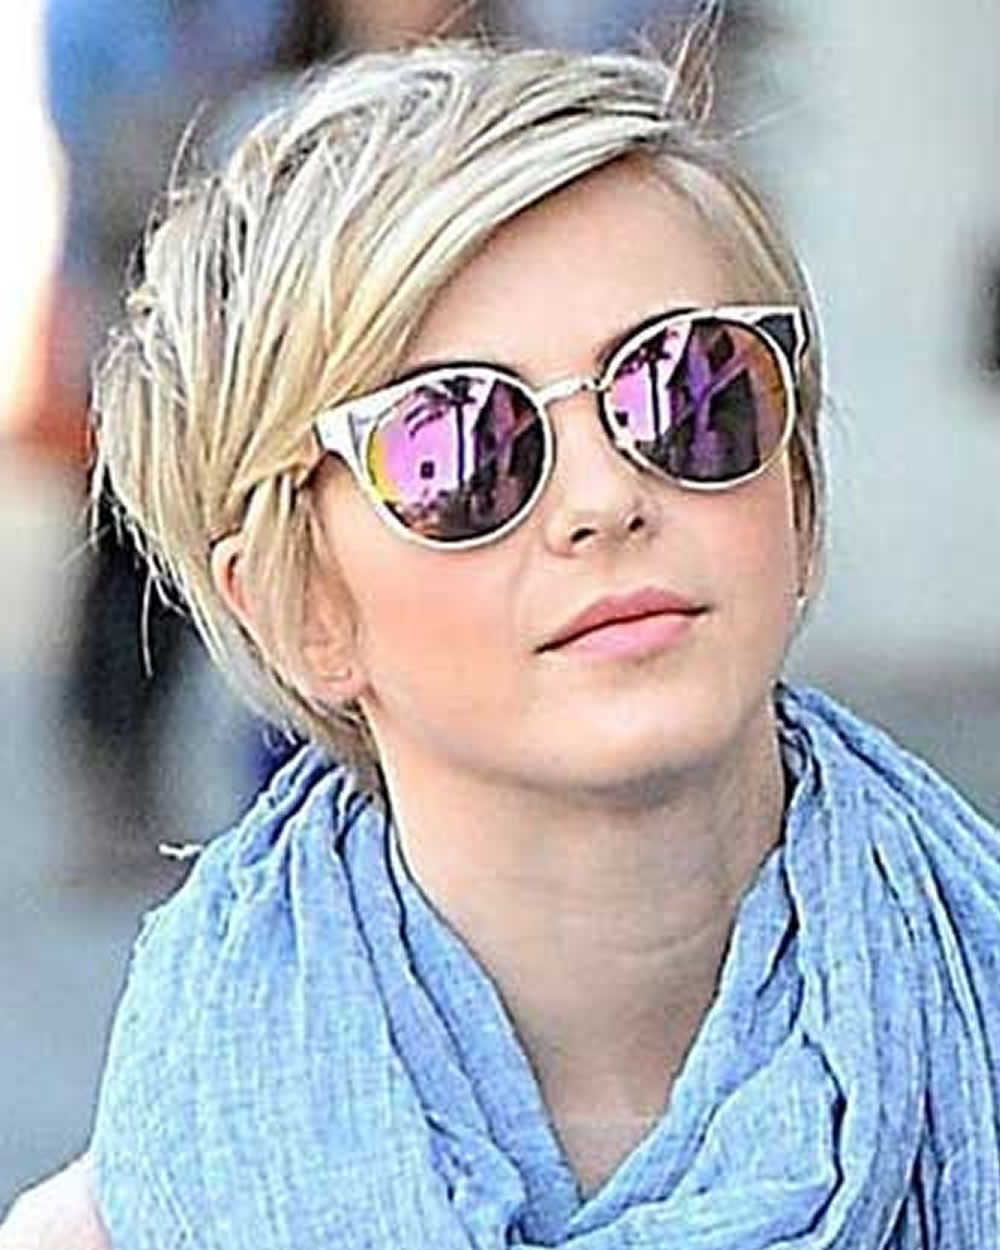 100 Best Short Hair Pixie Cut Hairstyle With Glasses Ideas That Regarding Short Hairstyles For Round Faces And Glasses (View 7 of 25)